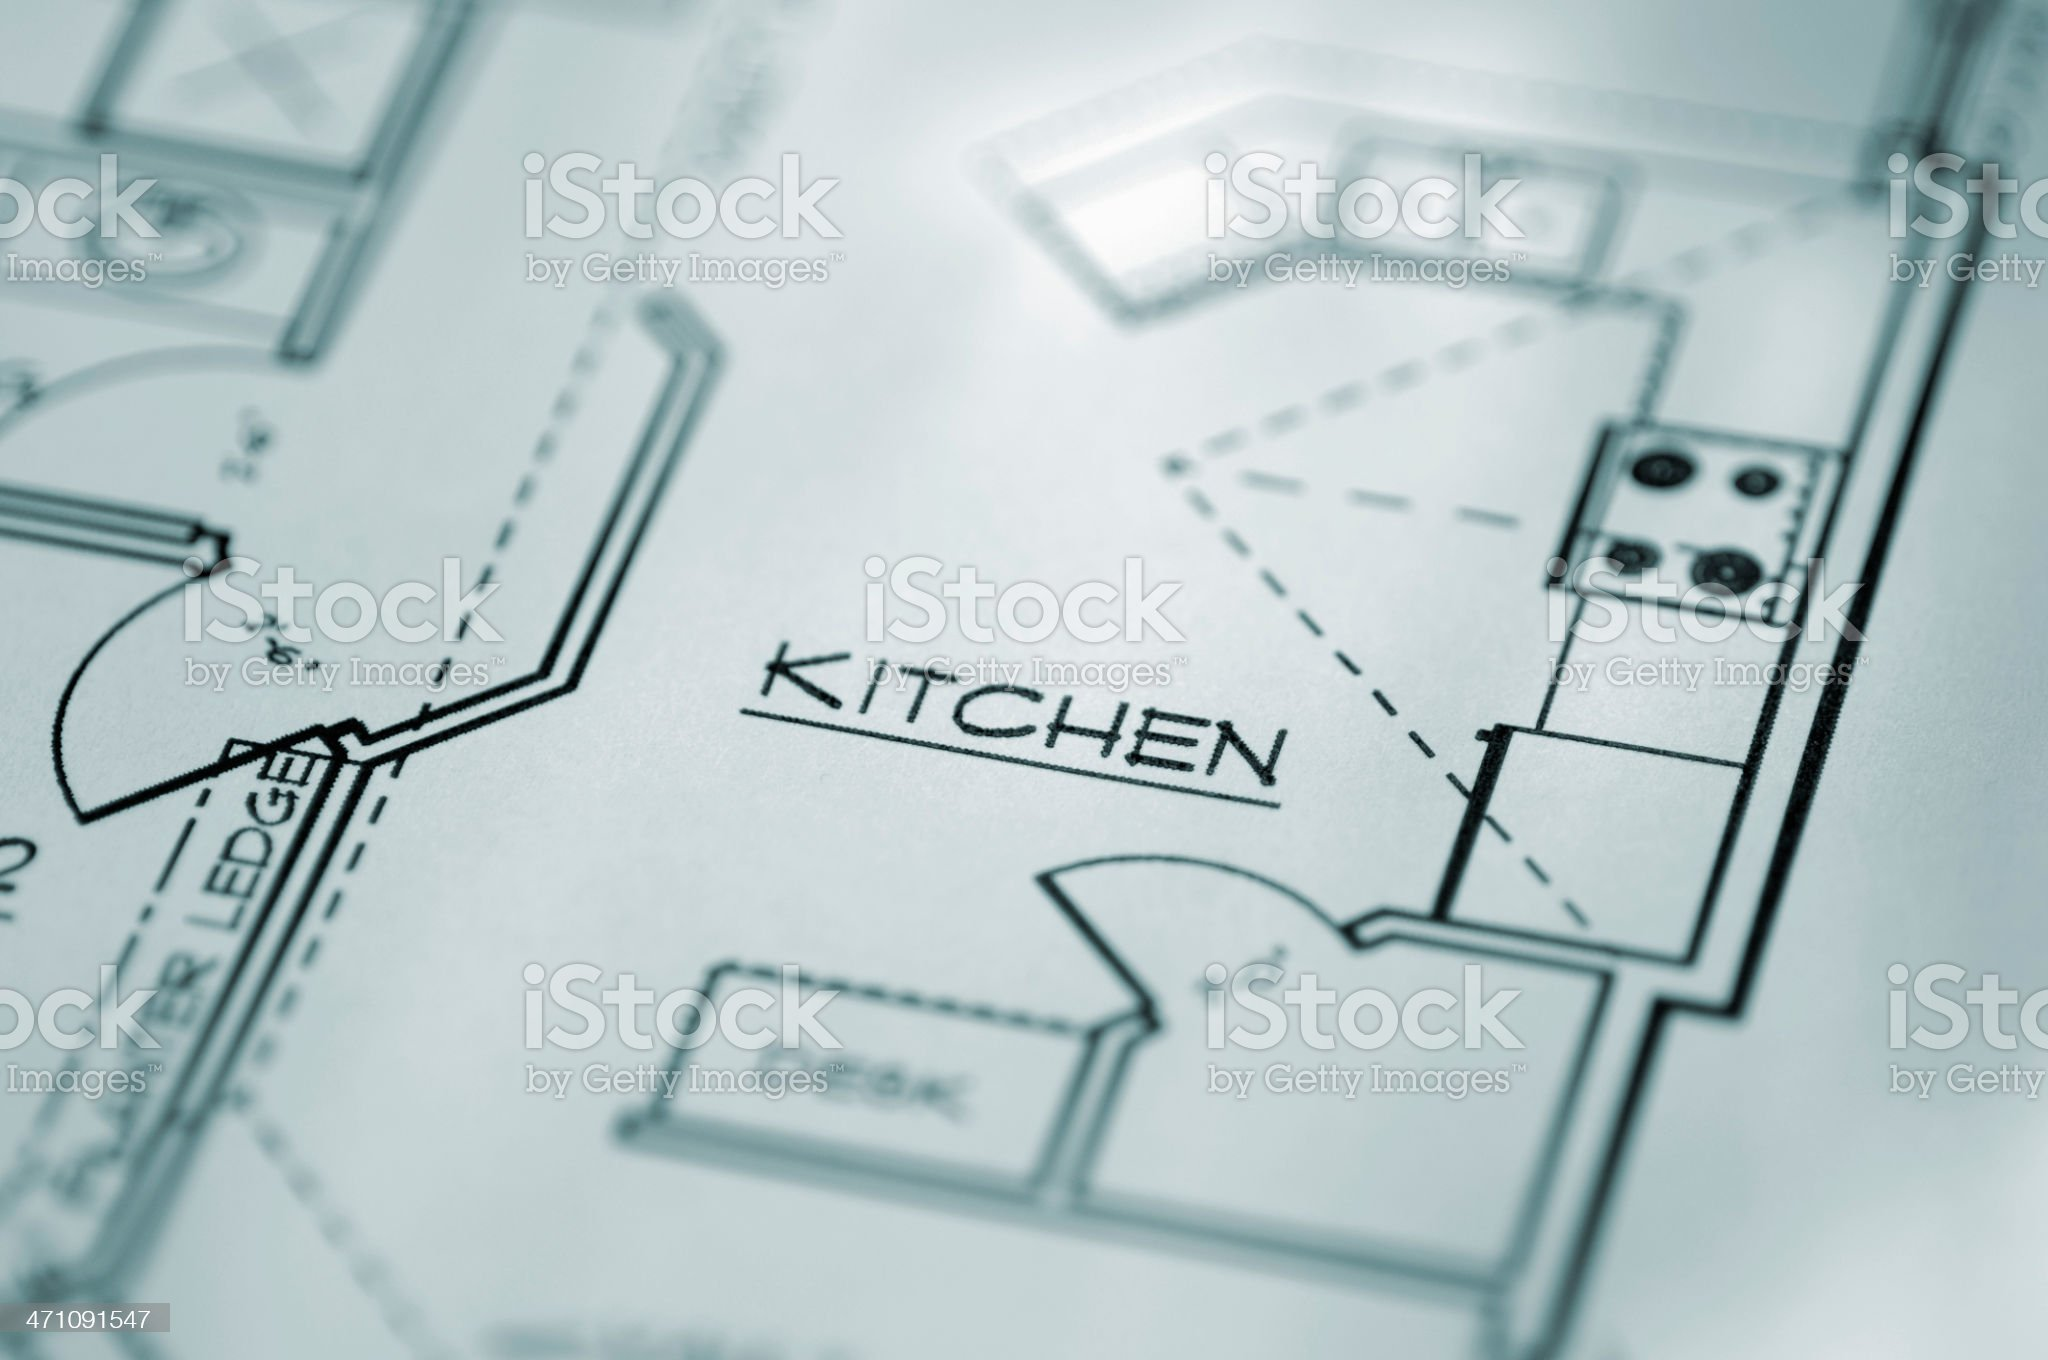 Domestic House Architectural Plans royalty-free stock photo